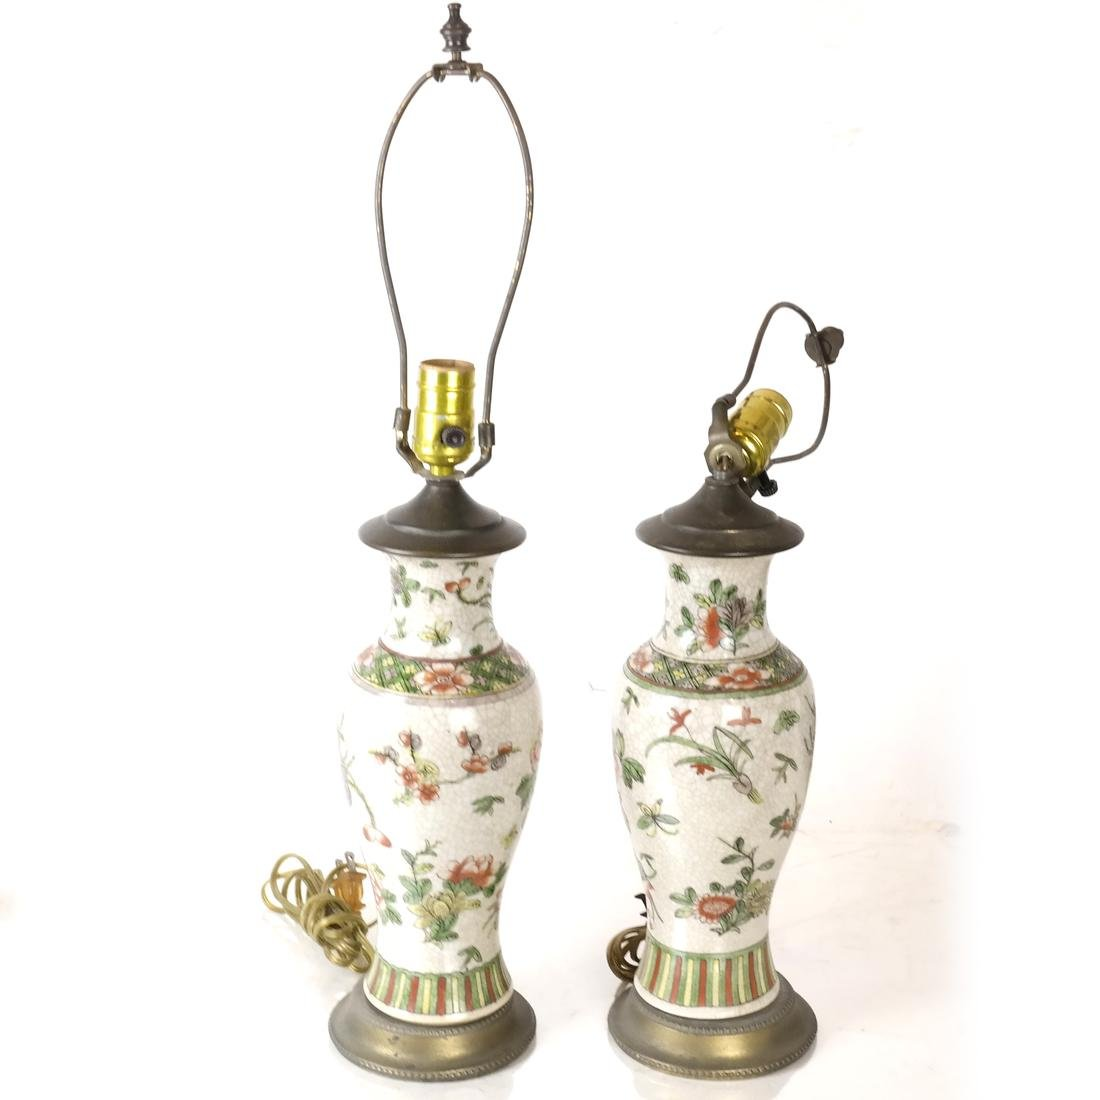 Pair of Asian Crackleware Decorated Lamps - 2